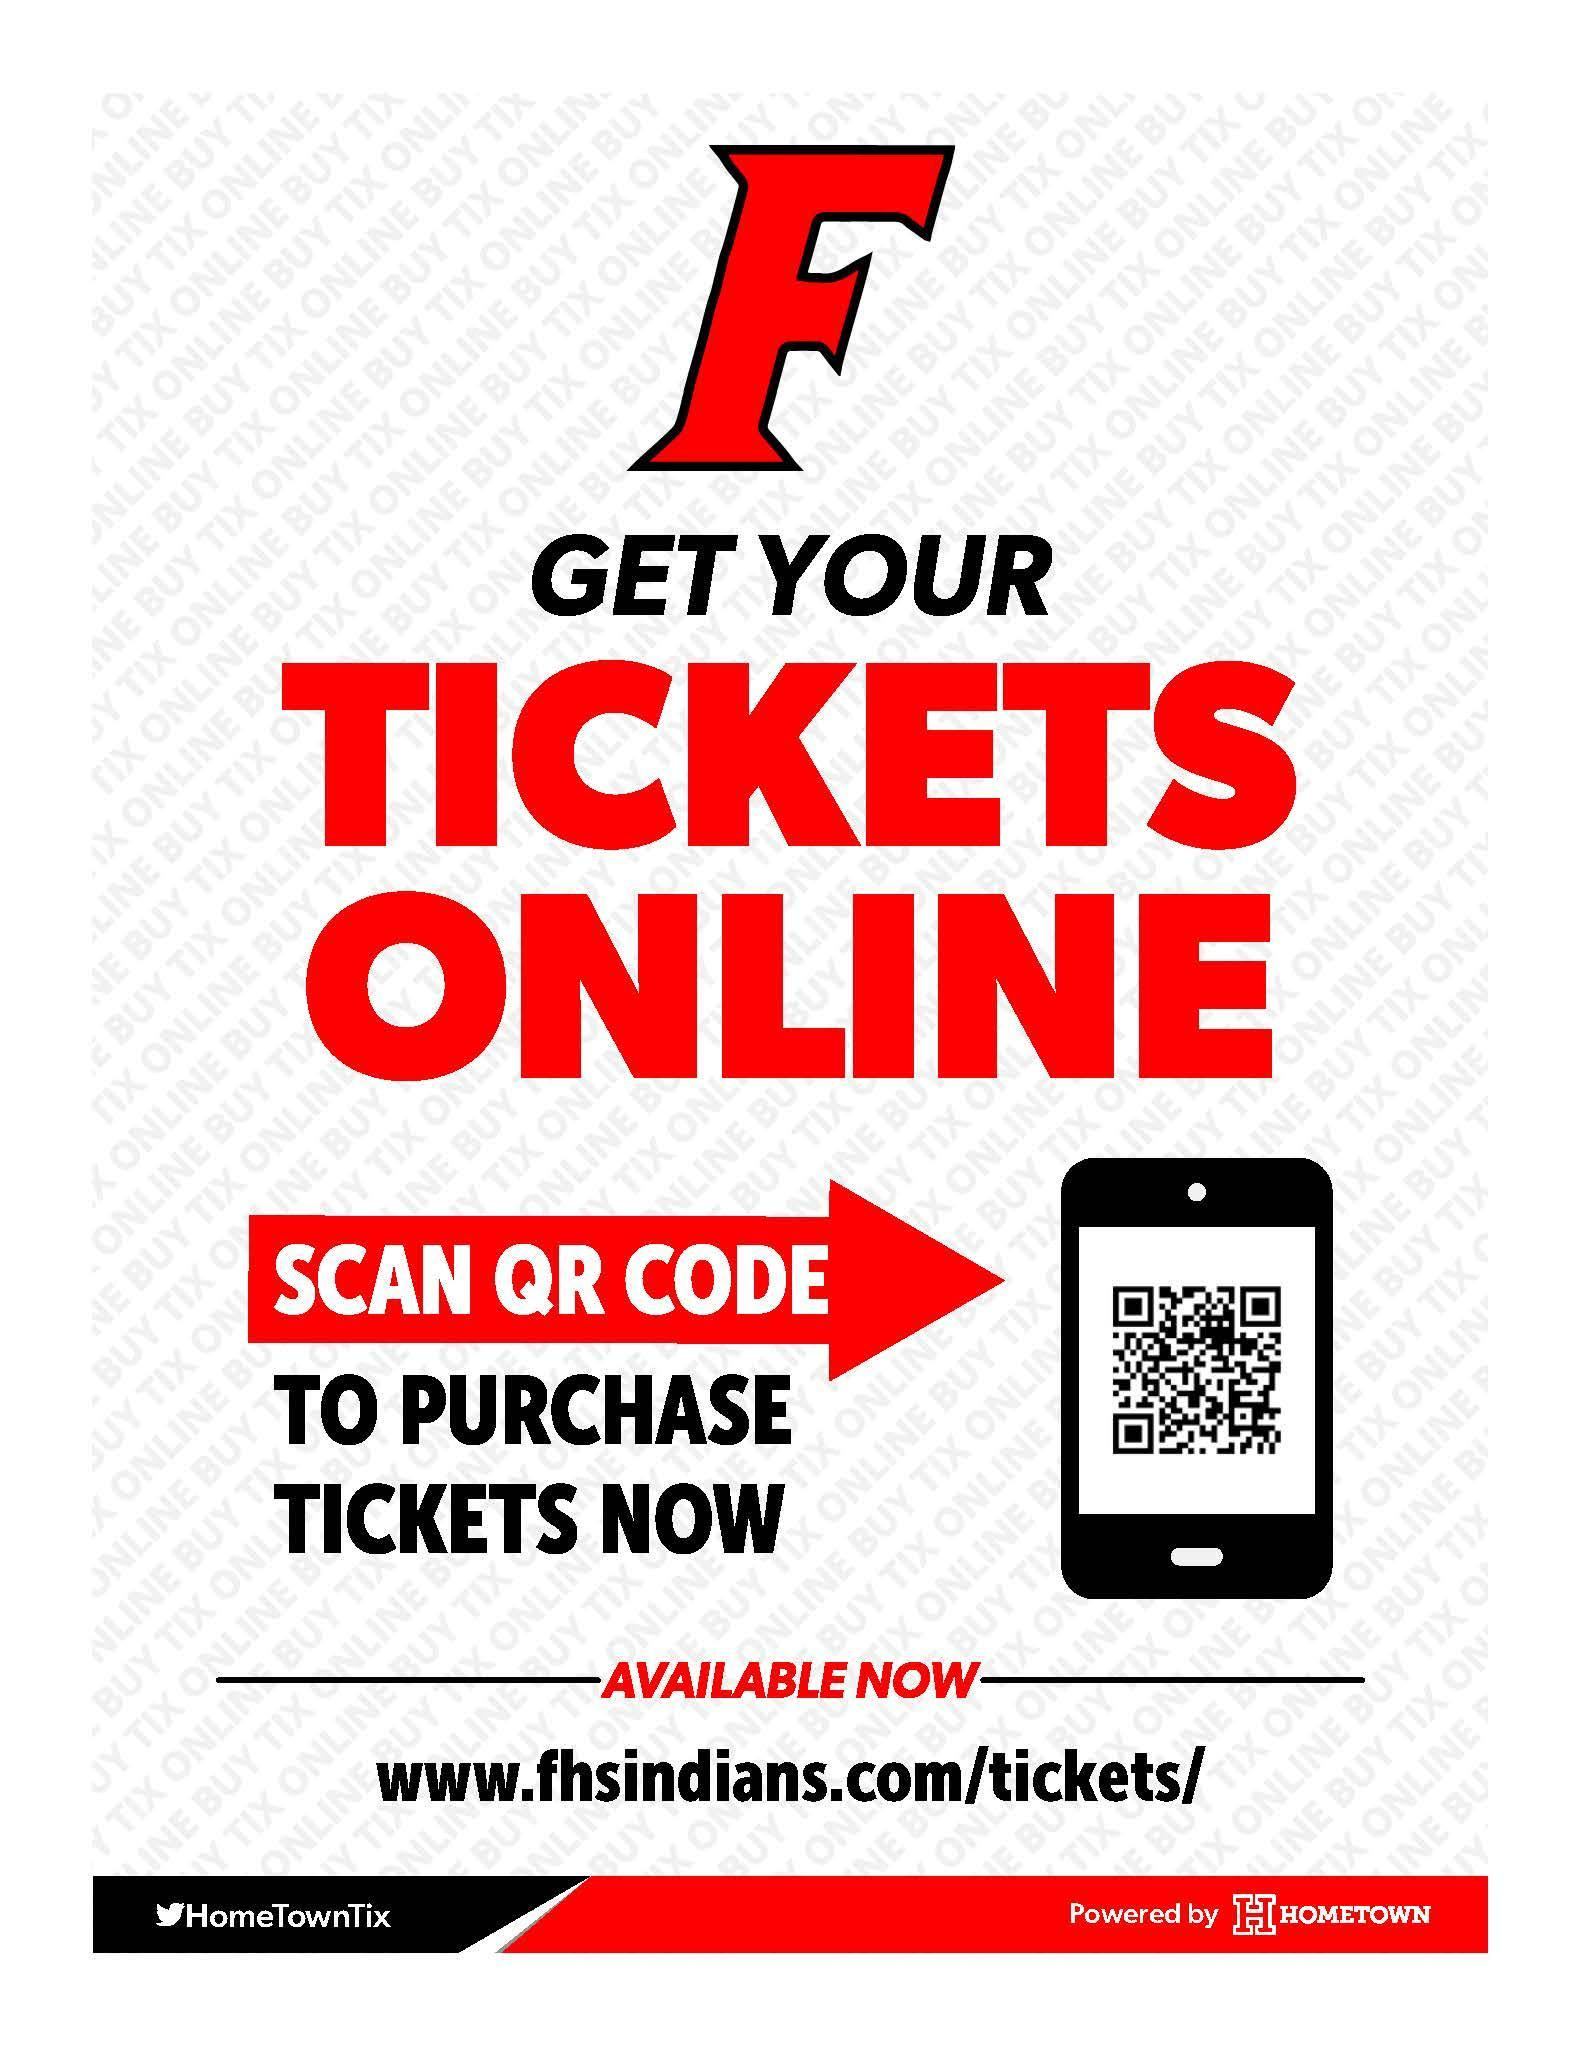 Order your tickets online! This is a flyer directing visitors to the ticketing site on our website.